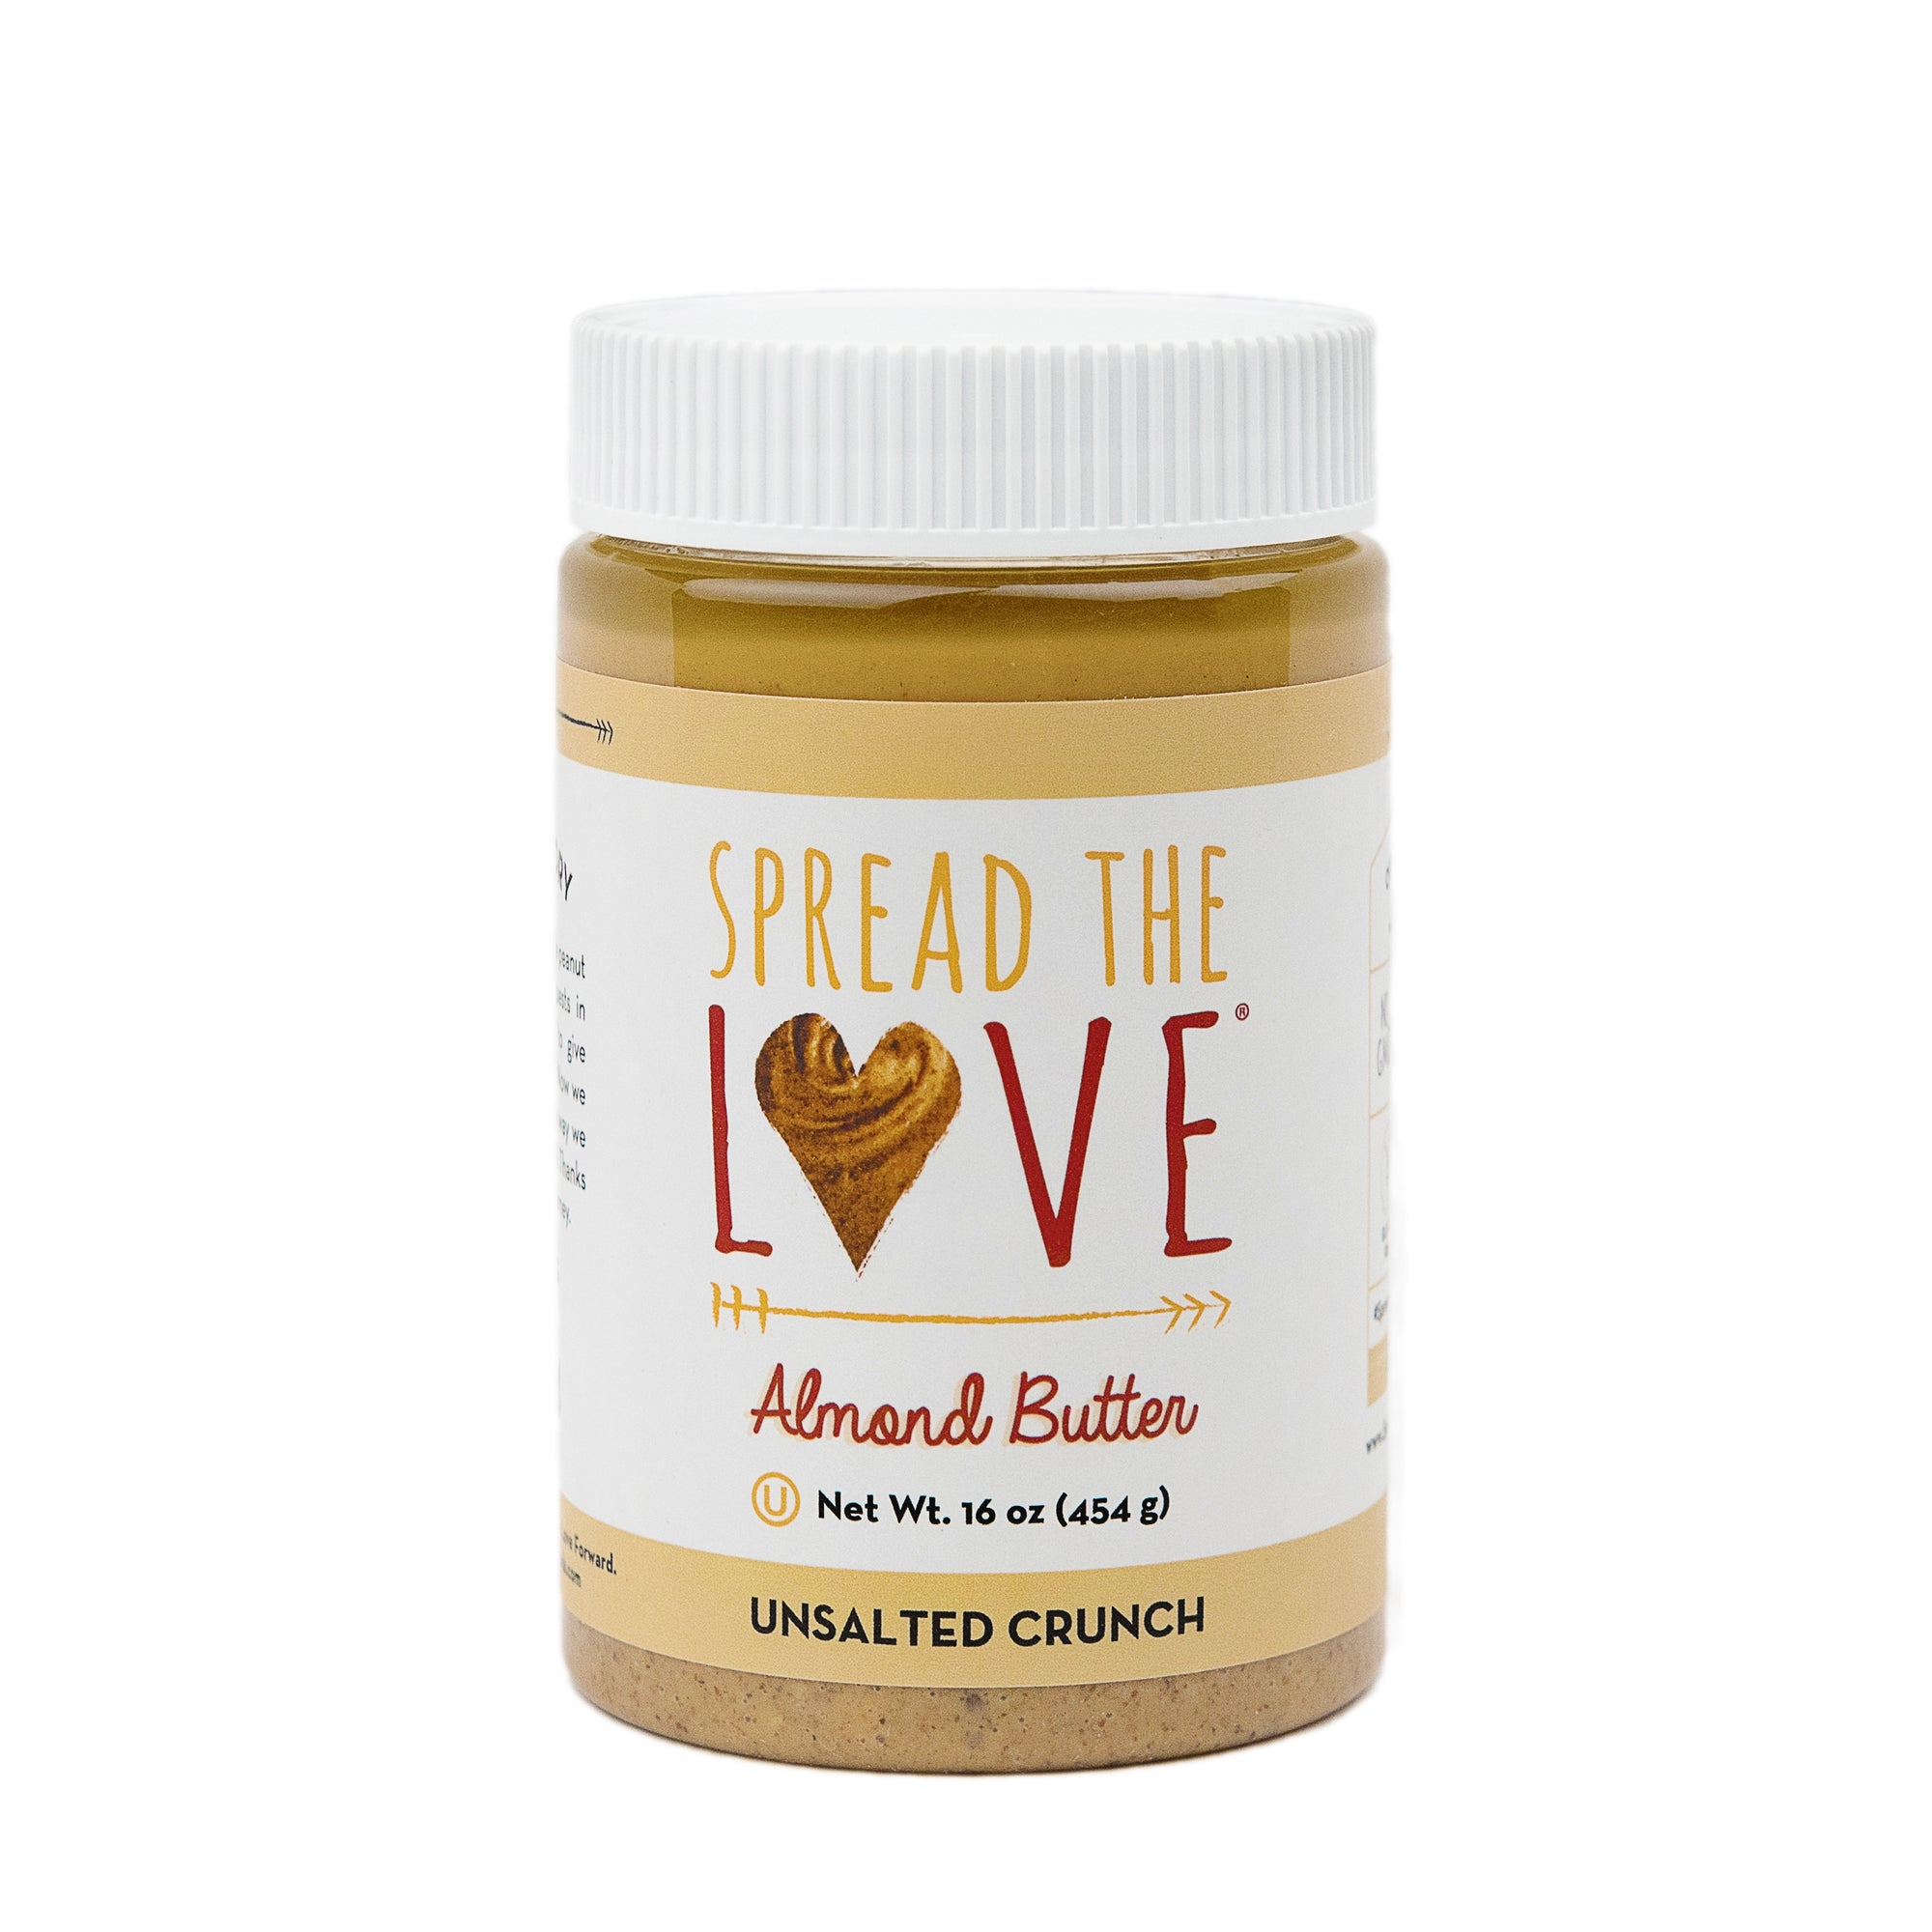 UNSALTED CRUNCH Almond Butter